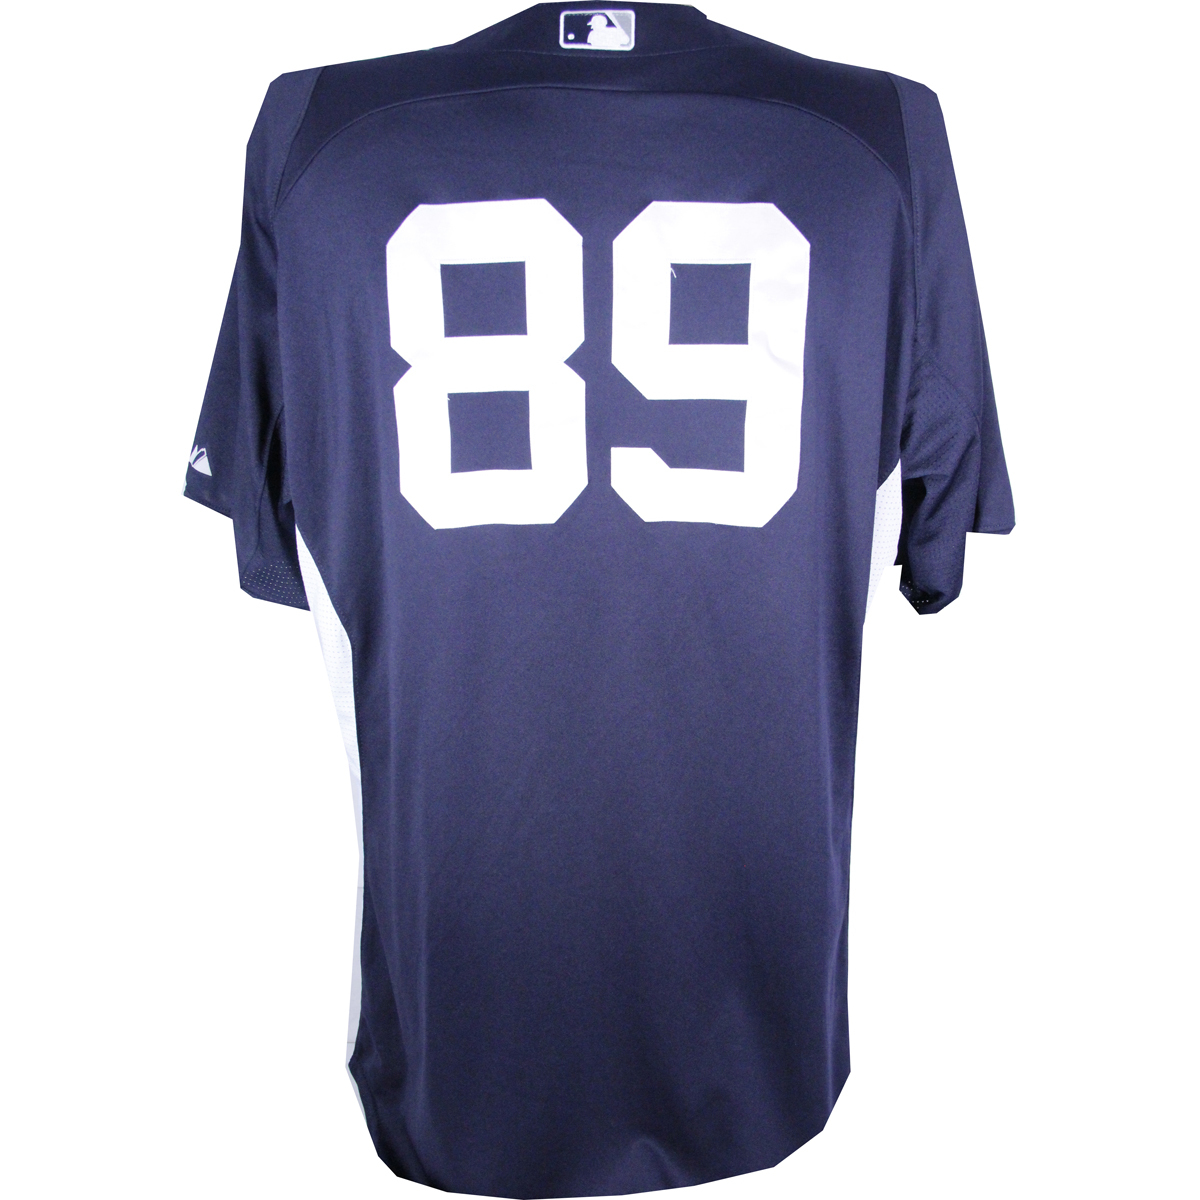 save off 066f0 e3ba7 Details about Kyle Higashioka Jersey - NY Yankees 2012 Spring Training Worn  #89 Home BP Top...